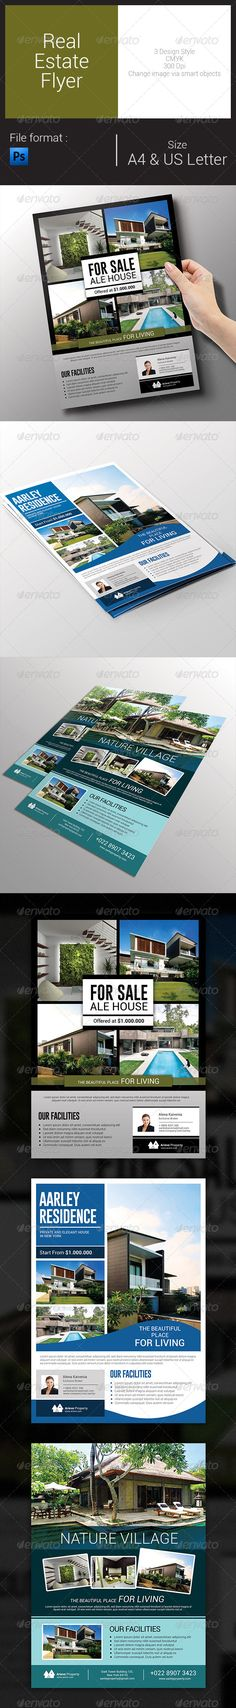 Real Estate Flyer Template PSD | Buy and Download: http://graphicriver.net/item/real-estate-flyer/8101904?WT.ac=category_thumb&WT.z_author=arifpoernomo&ref=ksioks